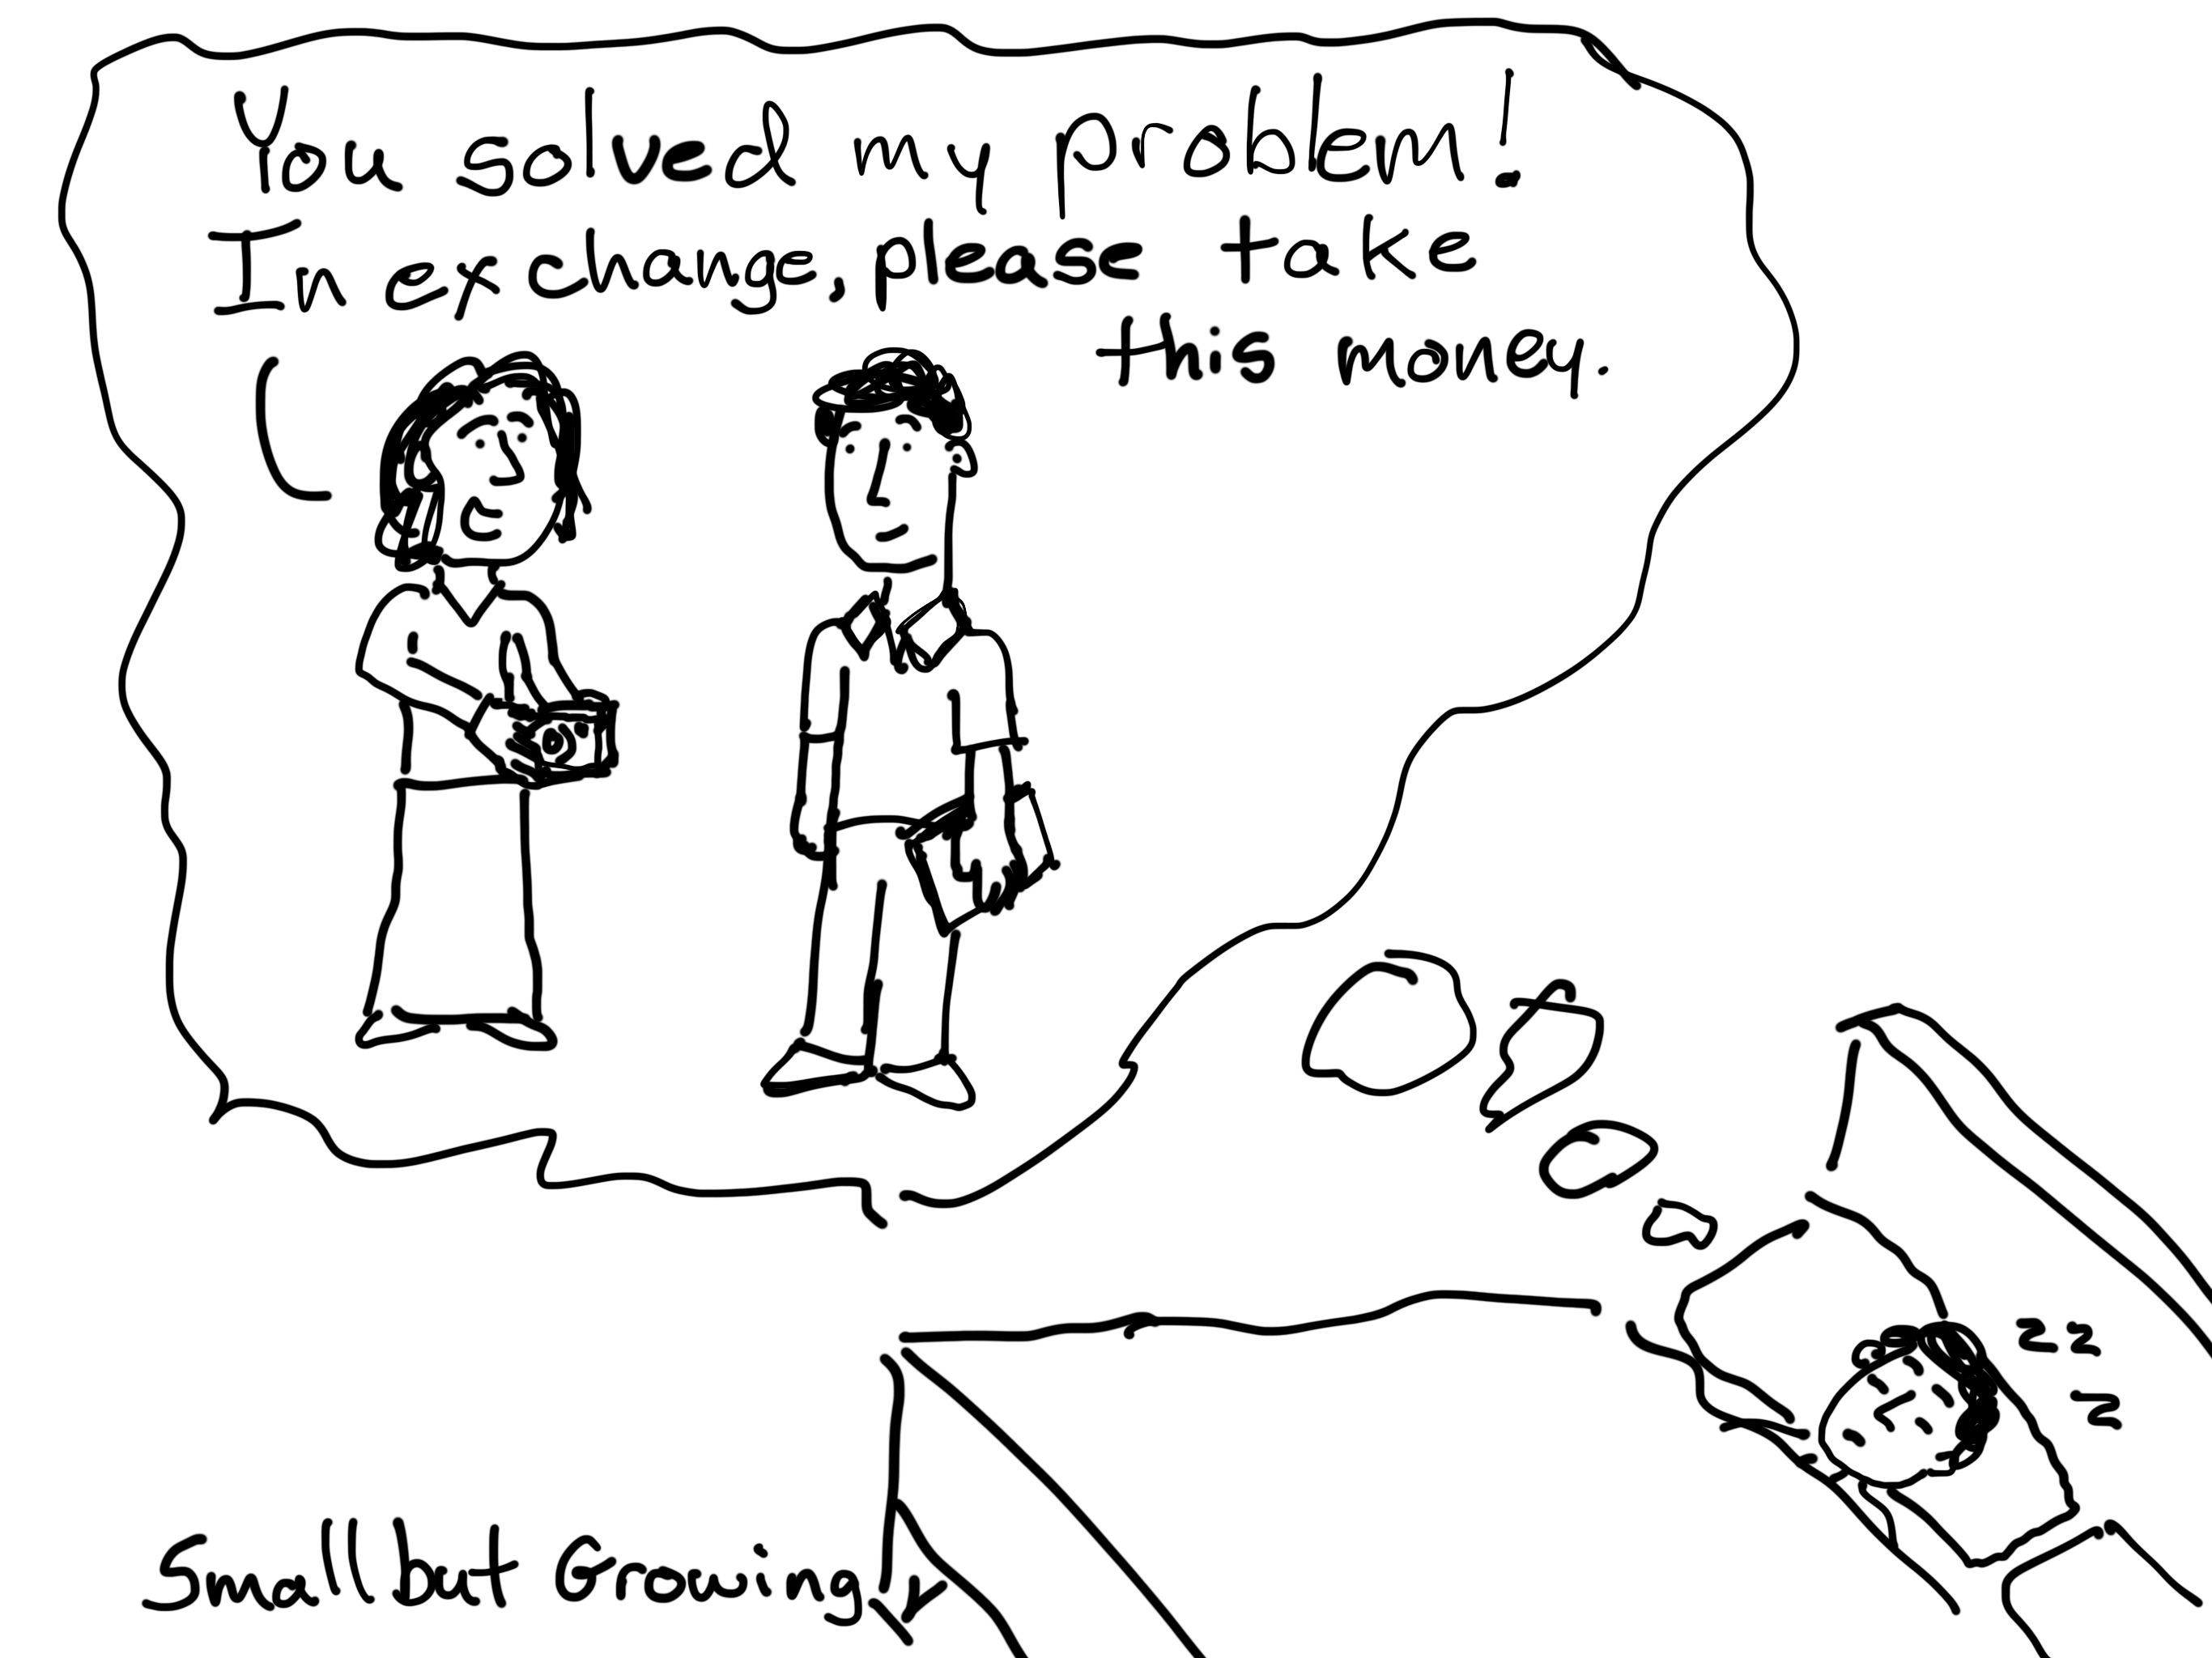 You solved my problem! In exchange please take this money. Cartoon by Chris Lysy